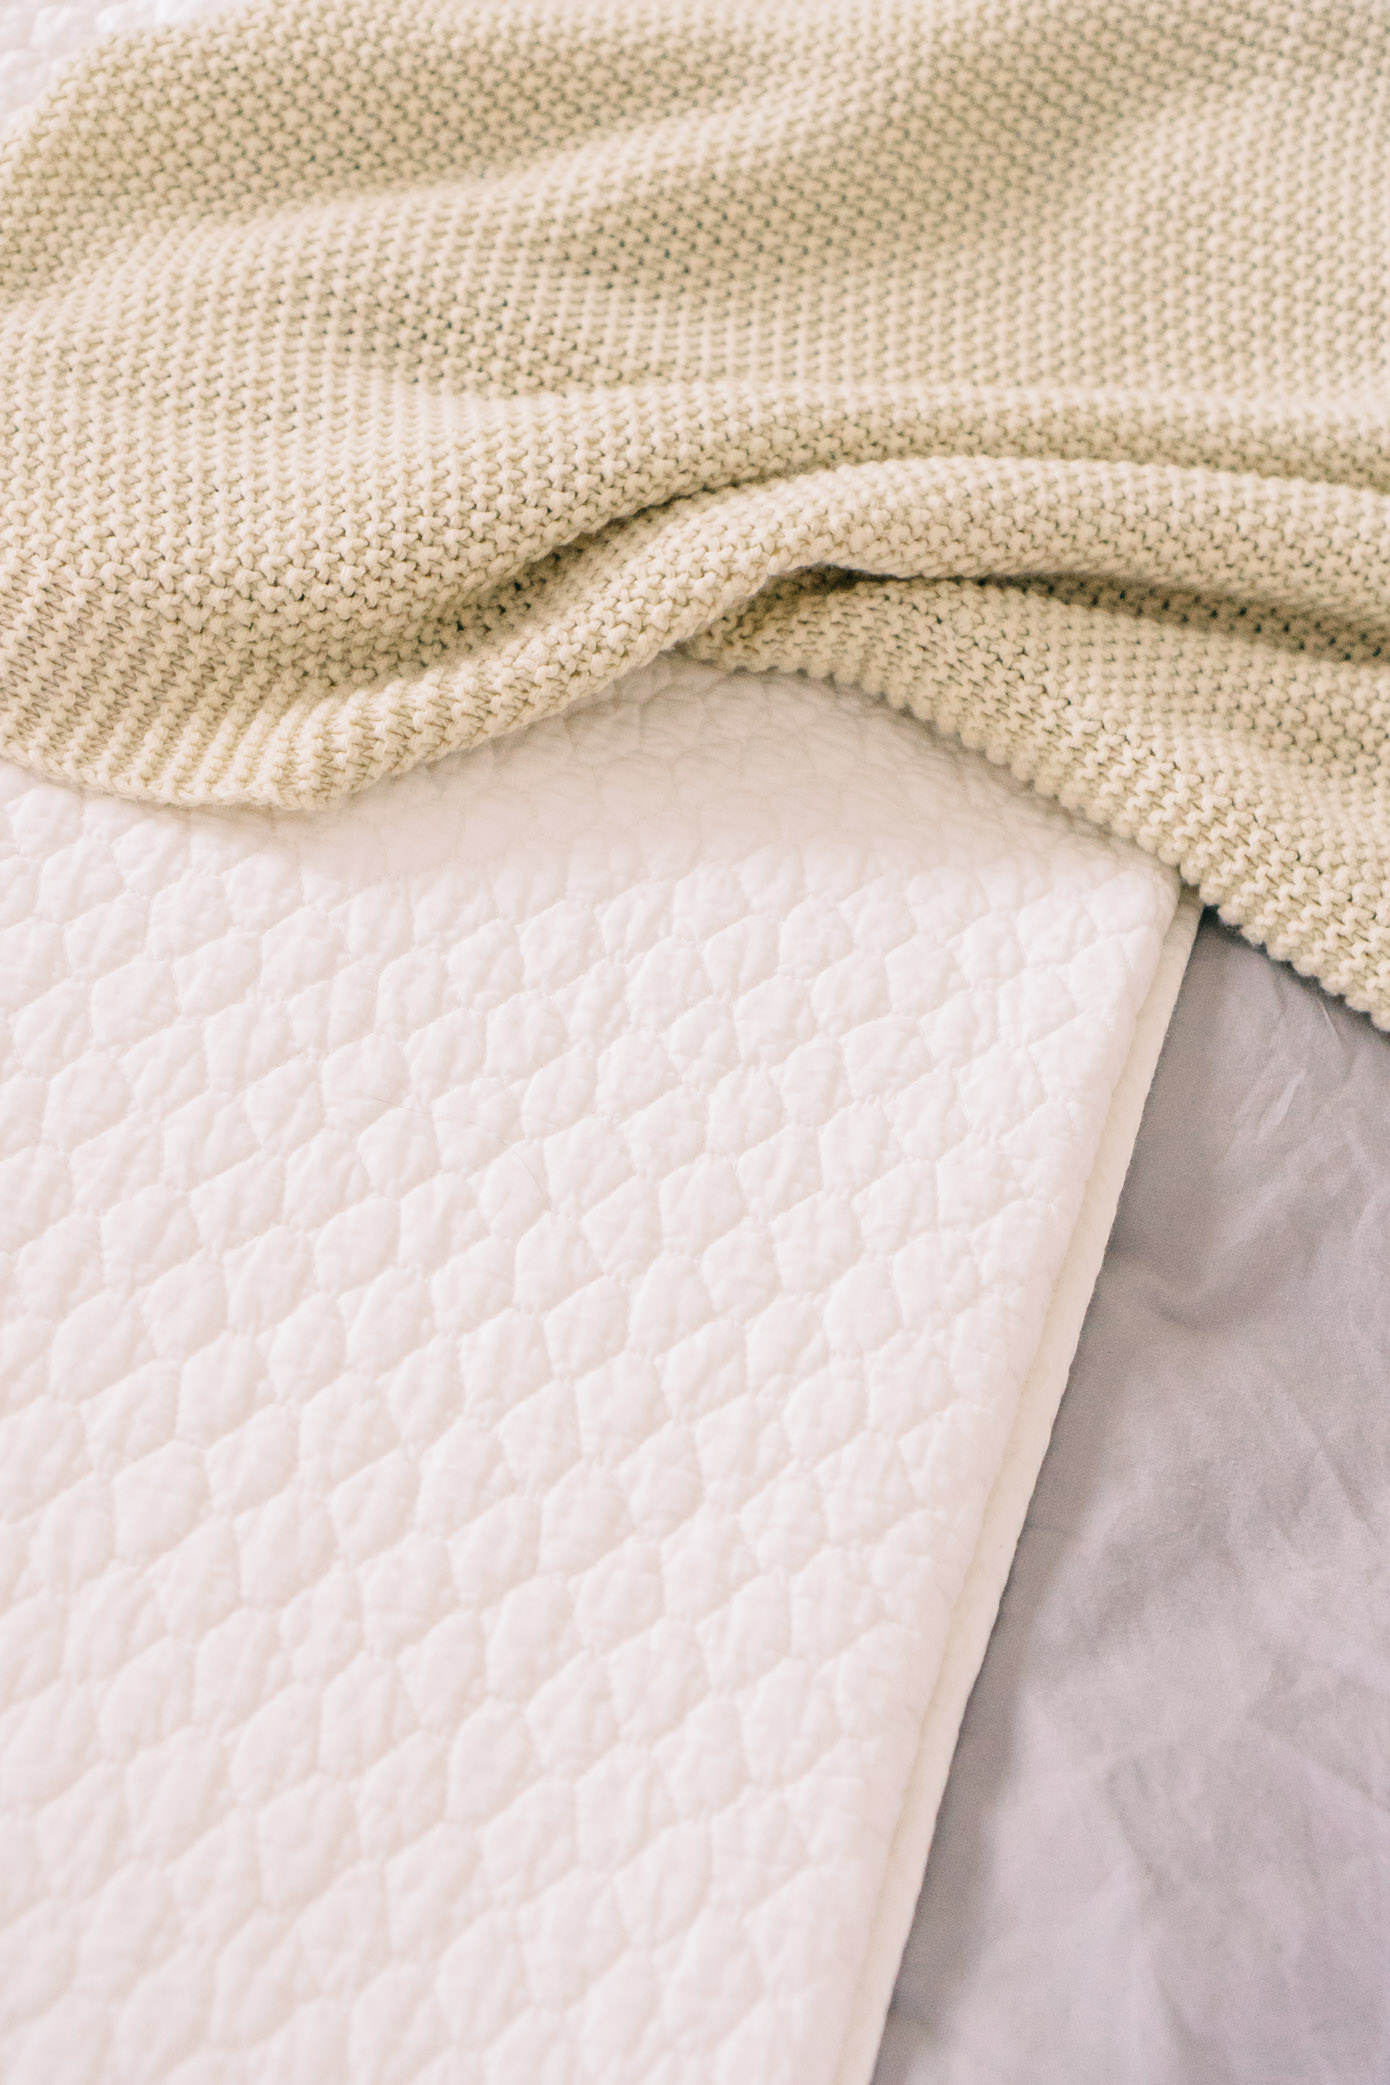 Guest Room Bedding Update | Feminine, Cozy Guest Room | Louella Reese Life & Style Blog